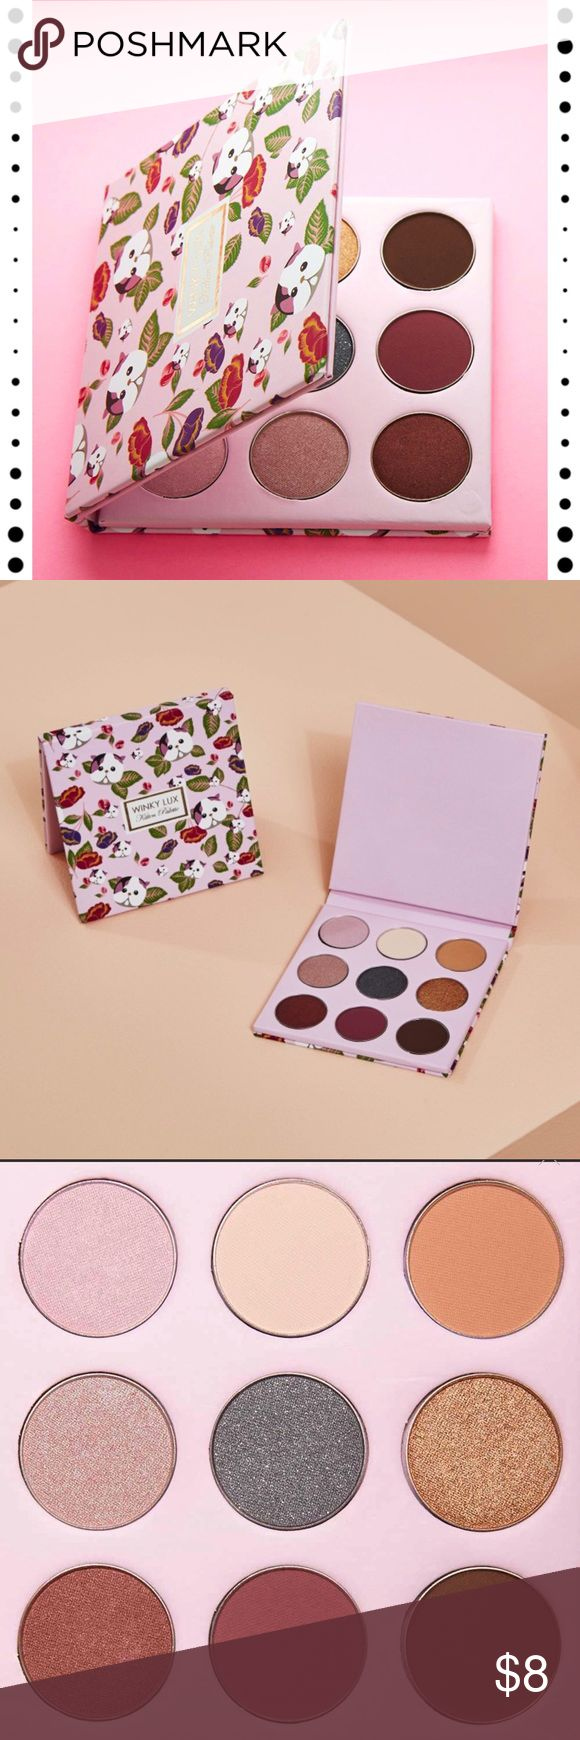 NWT Winky Lux Kitten Palette From Boxycharm  The Kitten Palette features highly-pigmented shadows in four finishes: holographic, matte, satin and glitter.  Cruelty Free 🐰 Paraben Free 🚫 Gluten Free 🍞 Made in the USA 🇺🇸  Never worn or swatched  Bundle and save 🛍🛍🛍 Winky Lux Makeup Eyeshadow